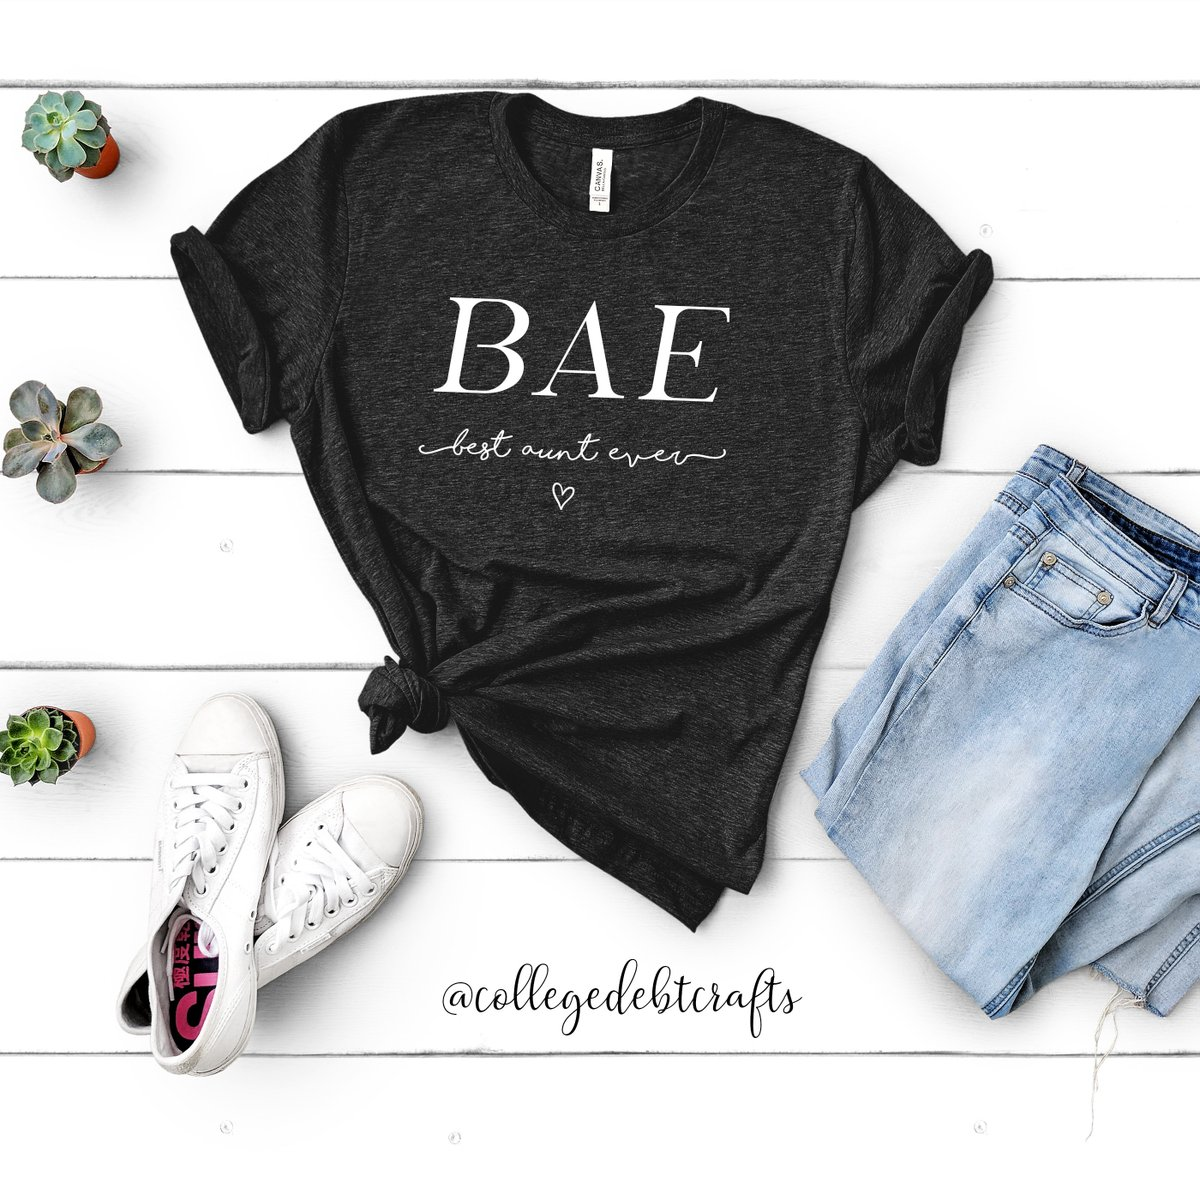 BAE 🖤 Best Aunt Ever - Get this shirt here....  - #collegedebtcrafts #indy #shoplocal #flatlay #etsysellersofinstagram #indybossbabe #lifestyle #etsy #etsyshop #aunt #auntlife #ootd